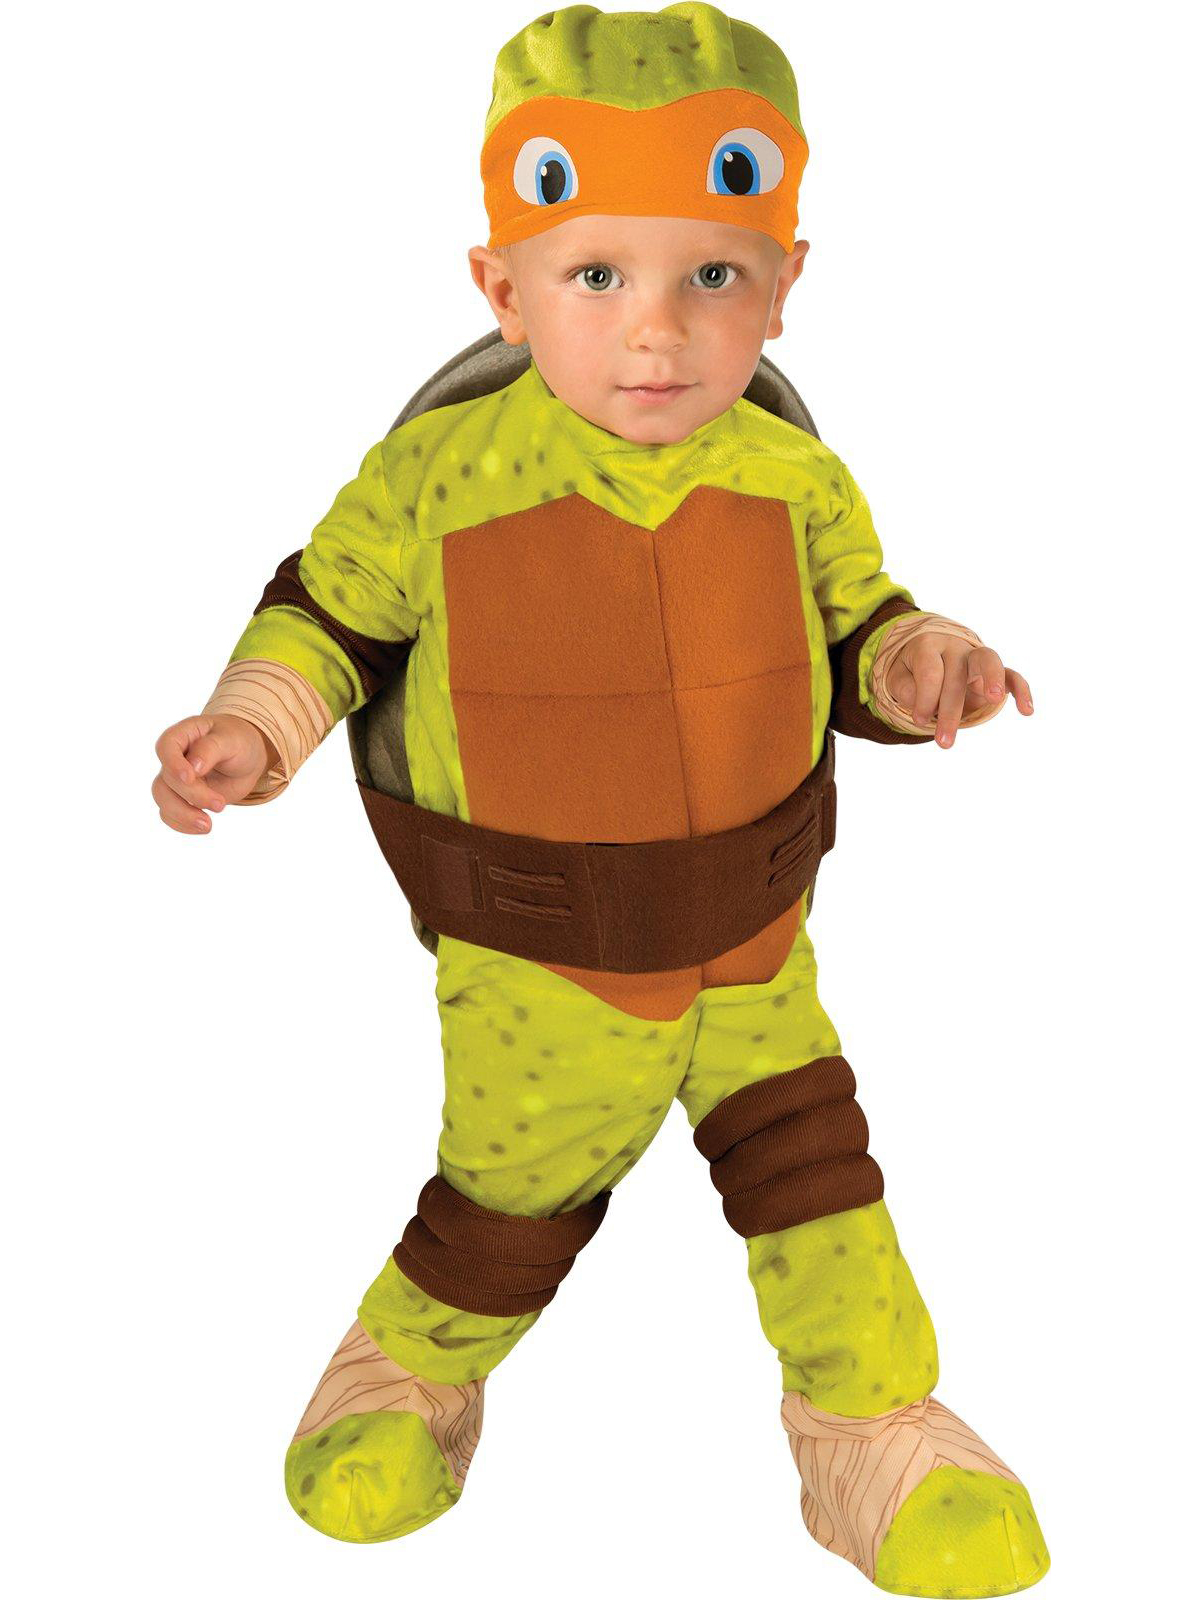 Teenage Mutant Ninja Turtle - Michelangelo Toddler Costume R886783-2T4T